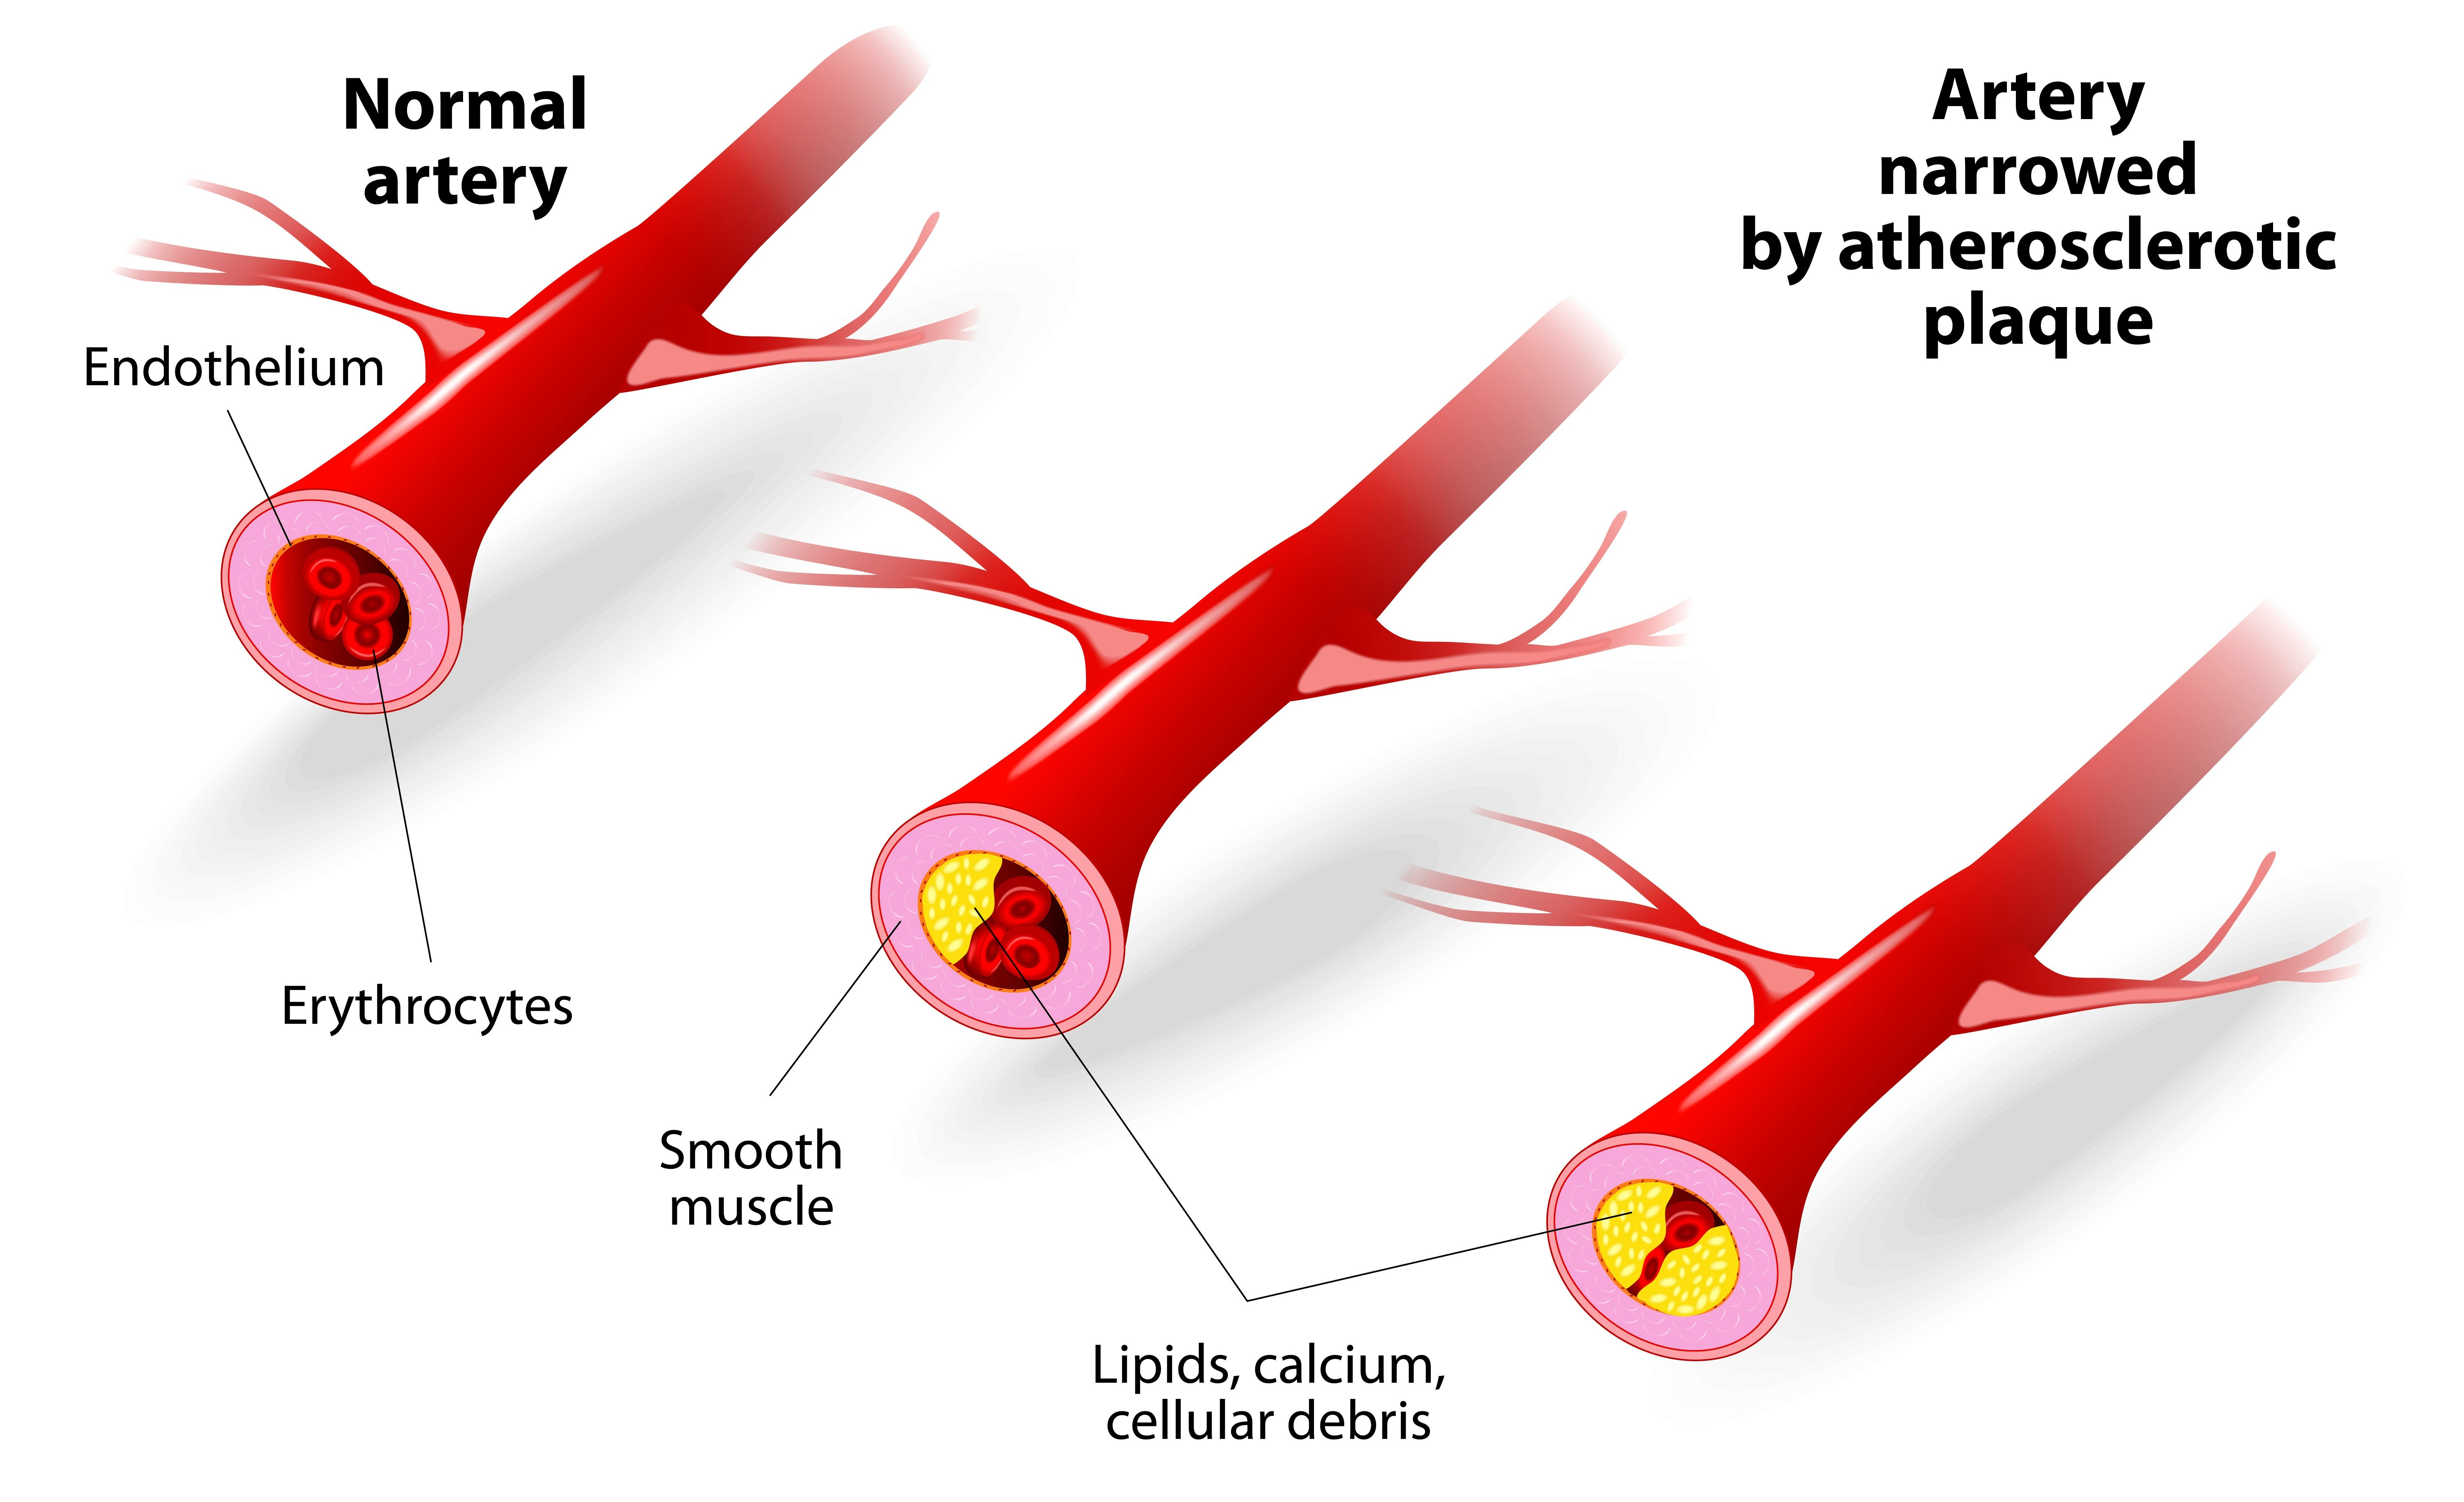 A 3D illustration of plaque blocking the blood flow